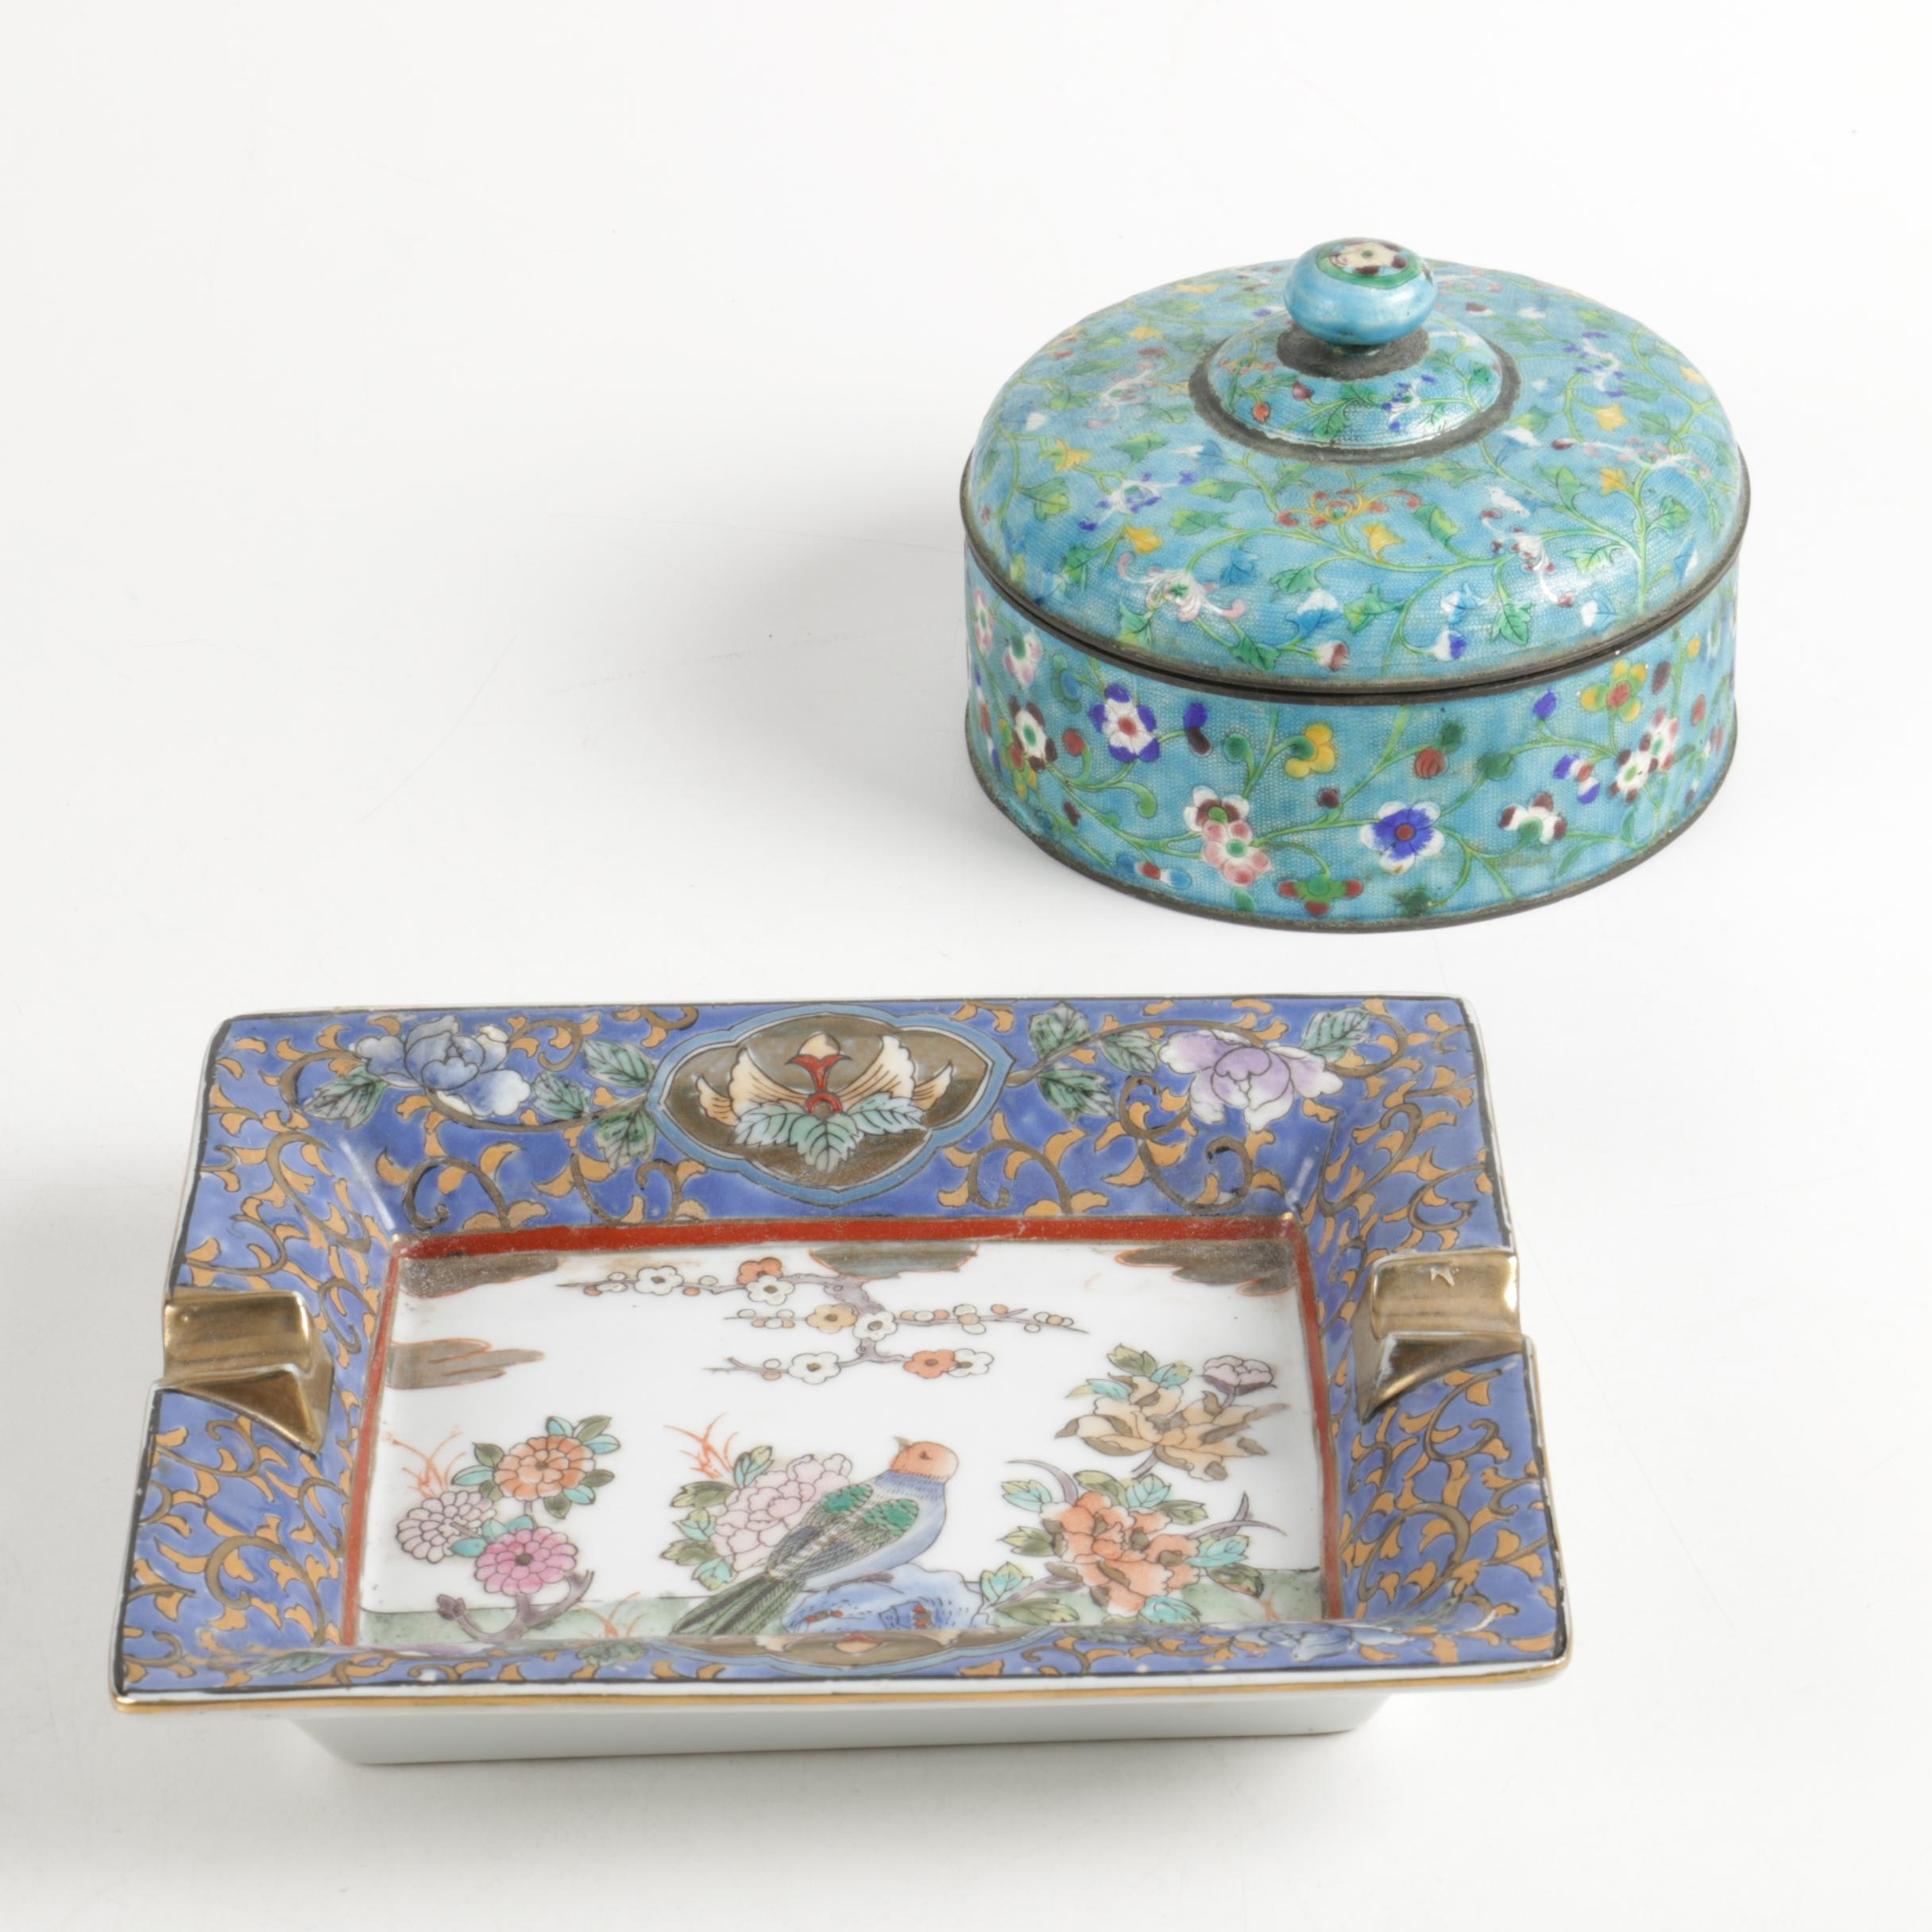 Chinese Porcelain Ash Receiver and Trinket Box